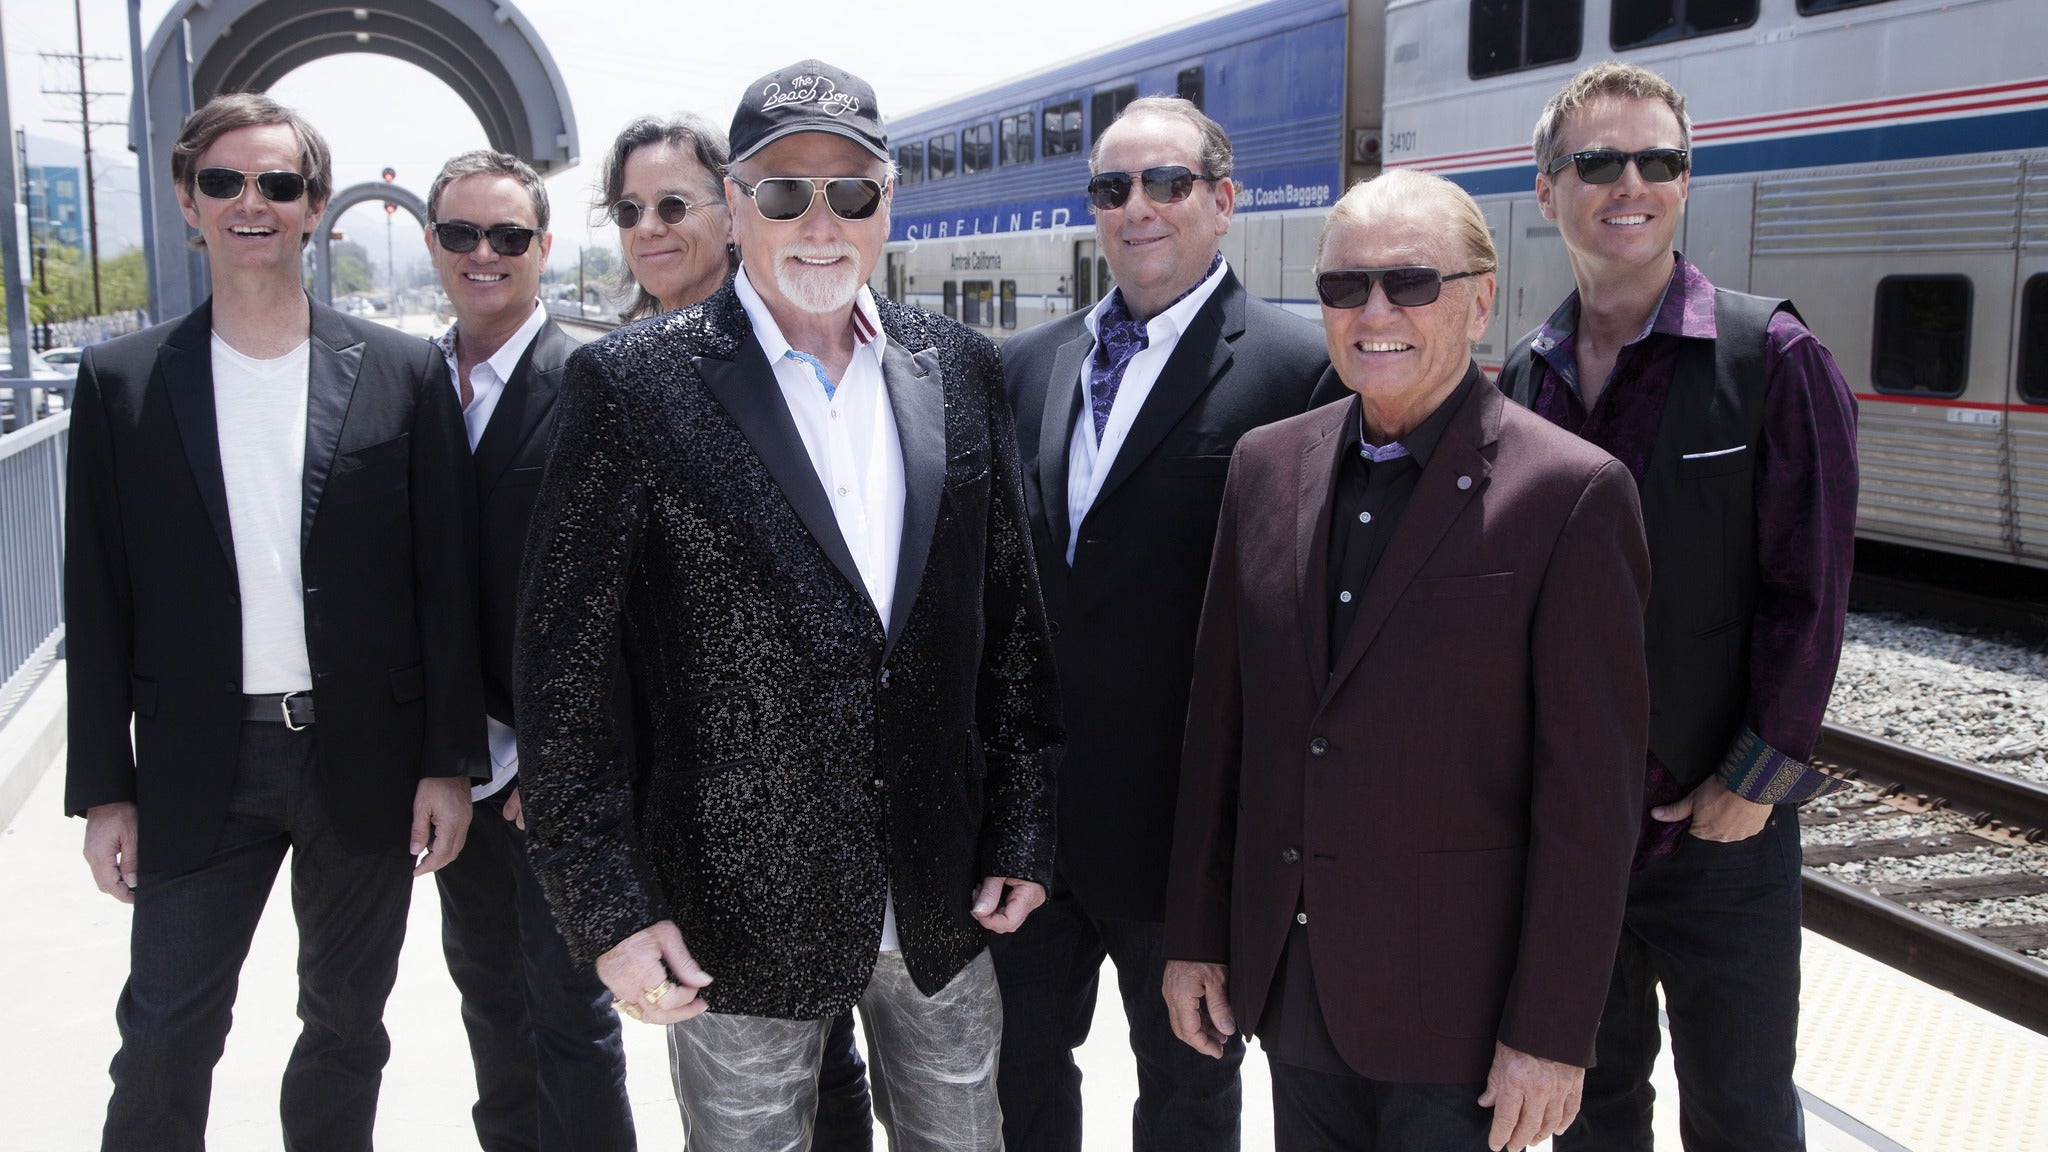 Civic Arts Plaza presents The Beach Boys